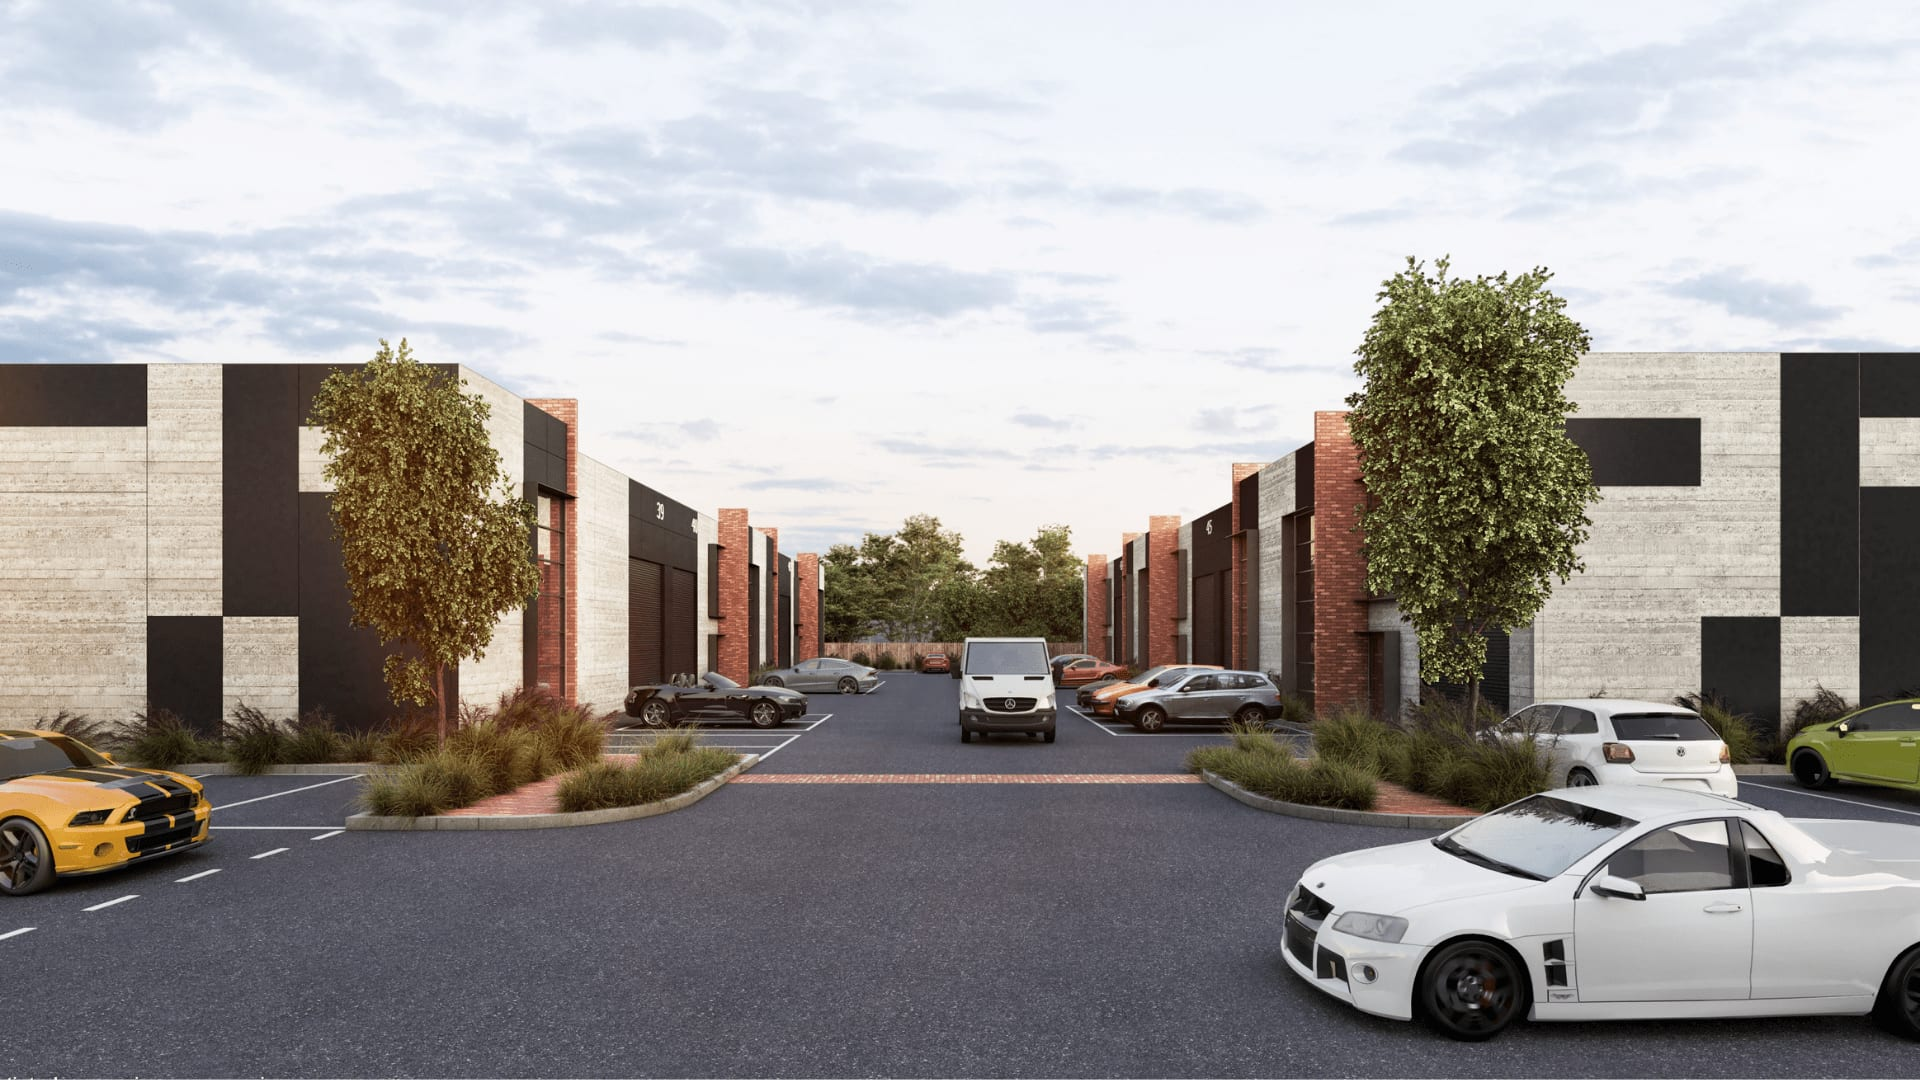 Photorealistic 3d Render of Architecturally Designed Warehouses at Sovereign BP - Driveway